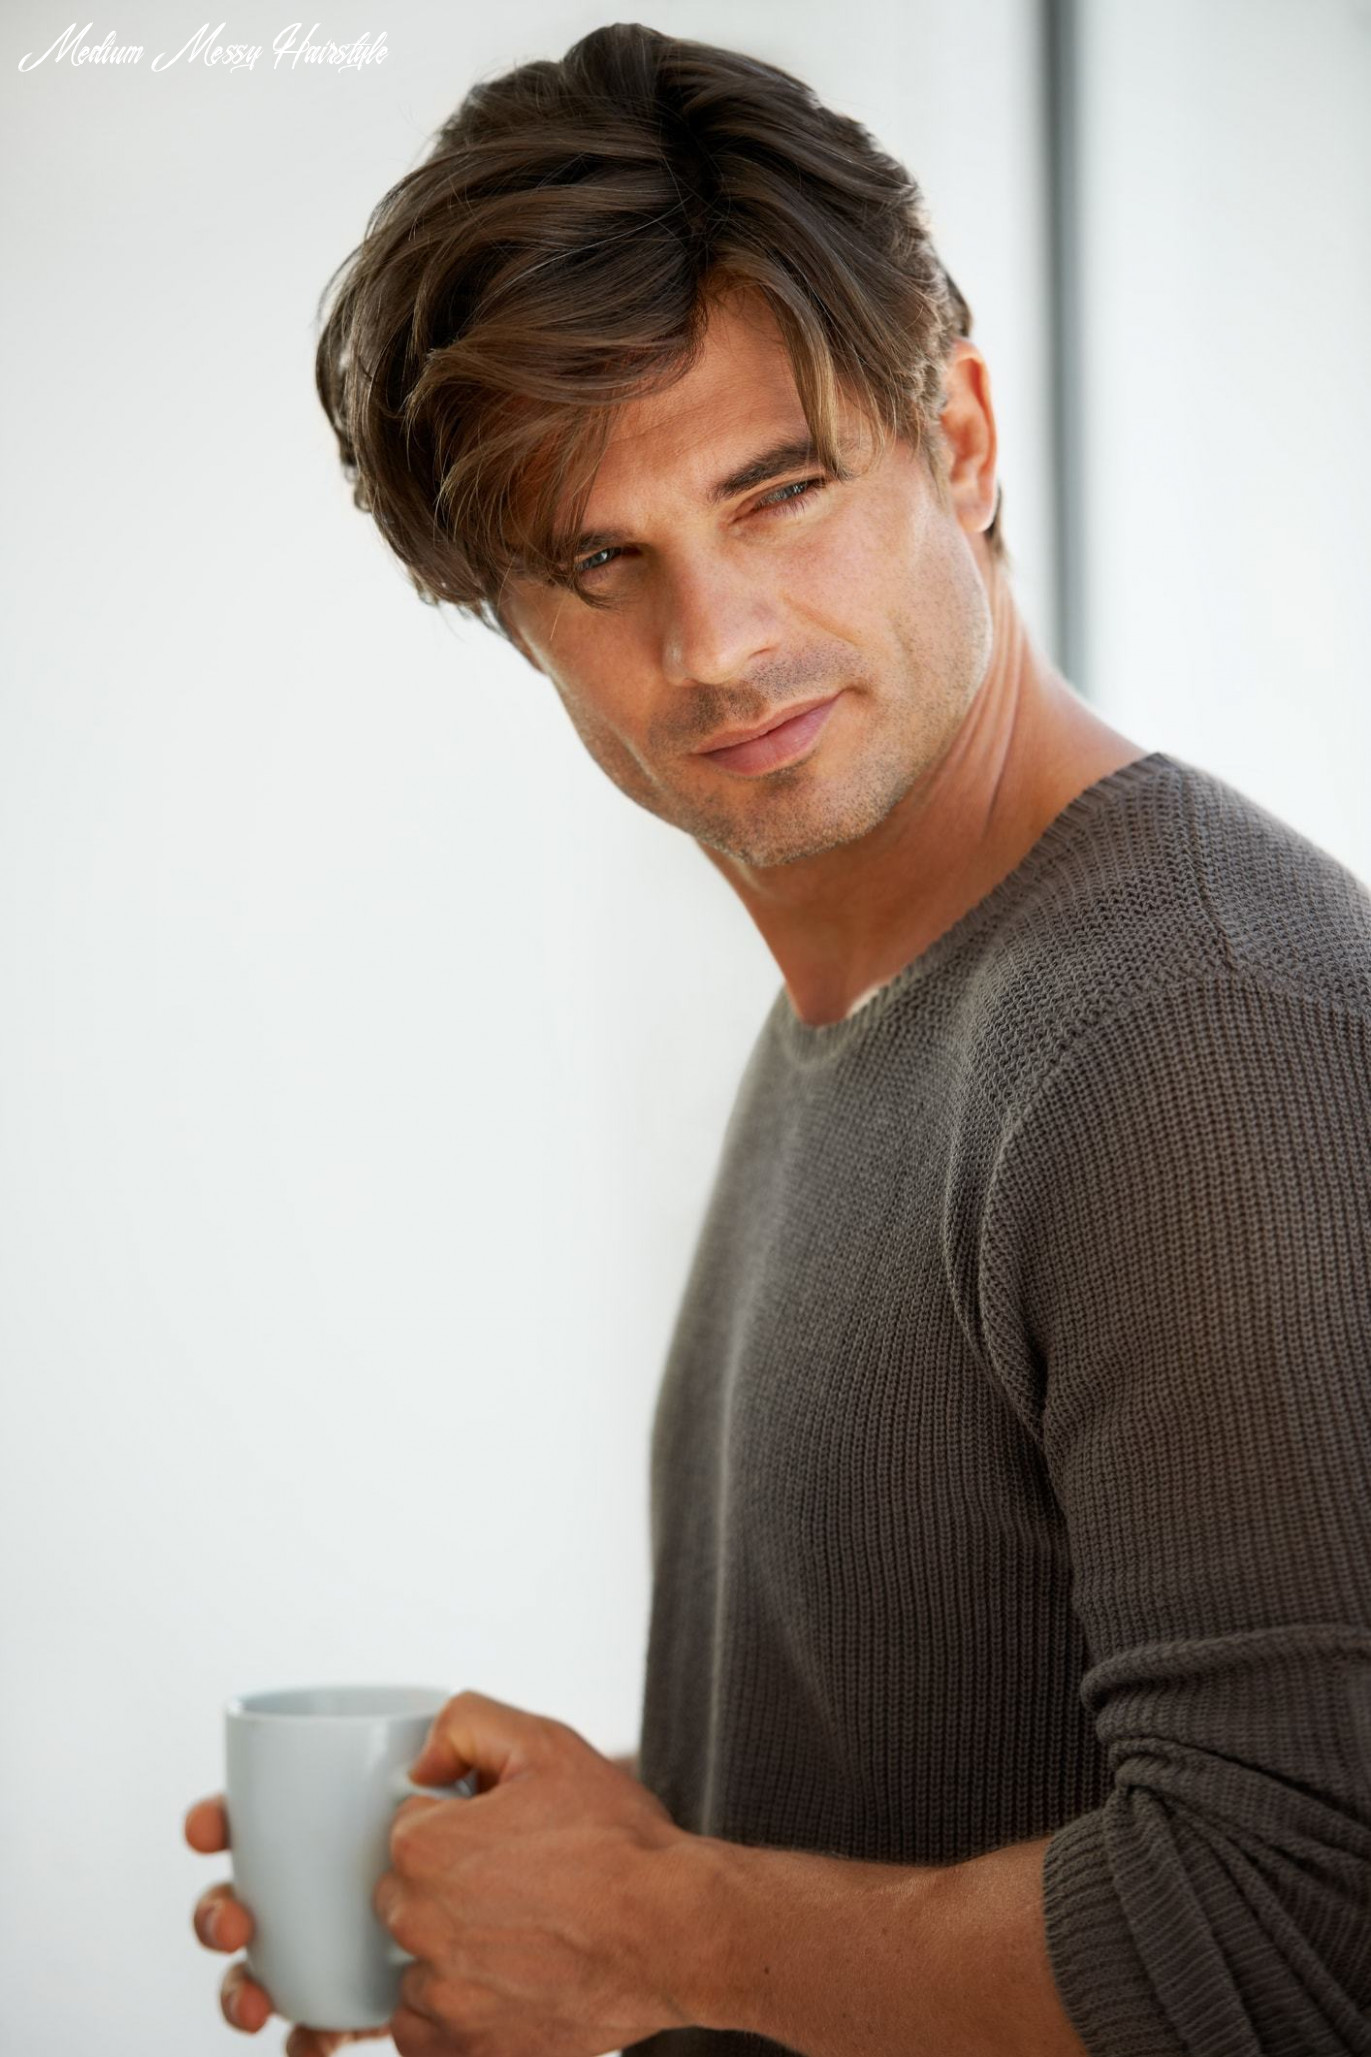 Messy hairstyles for men in 8 | all things hair us medium messy hairstyle